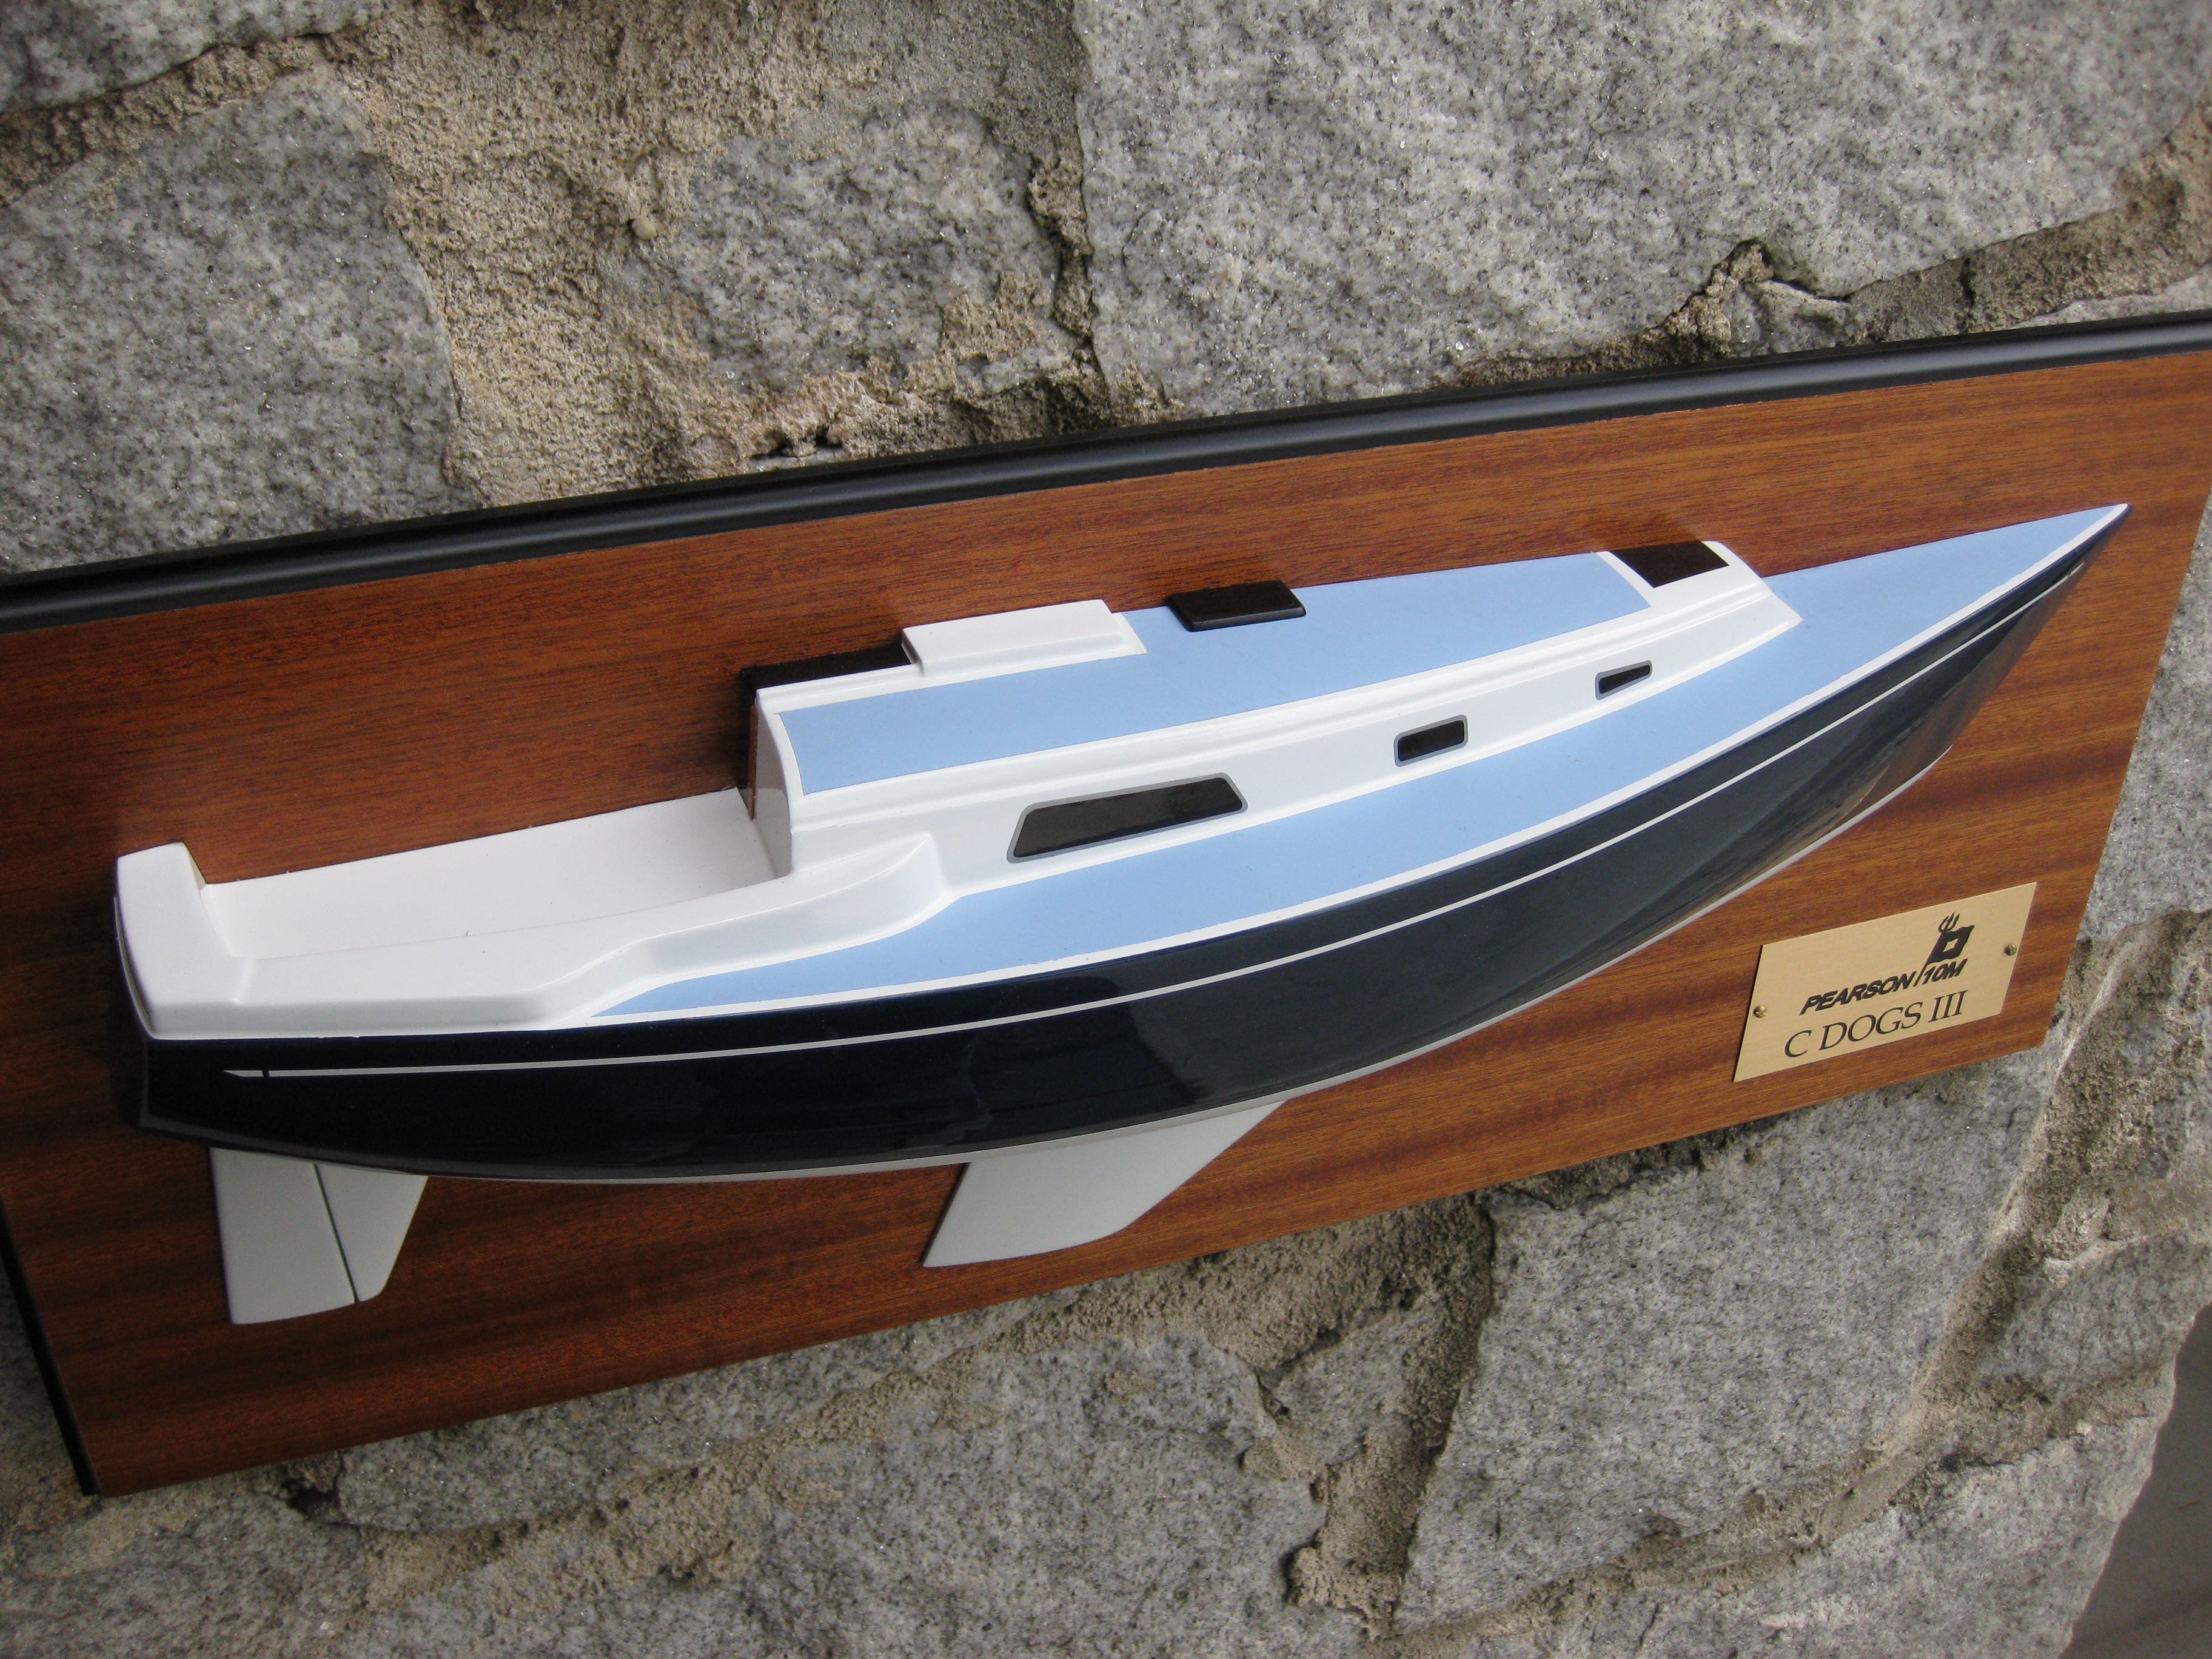 This Is The 21 Half Hull Model Of Pearson 10 M Sailboat Mounted On Mahogany Backboards Size Backboard 24 X